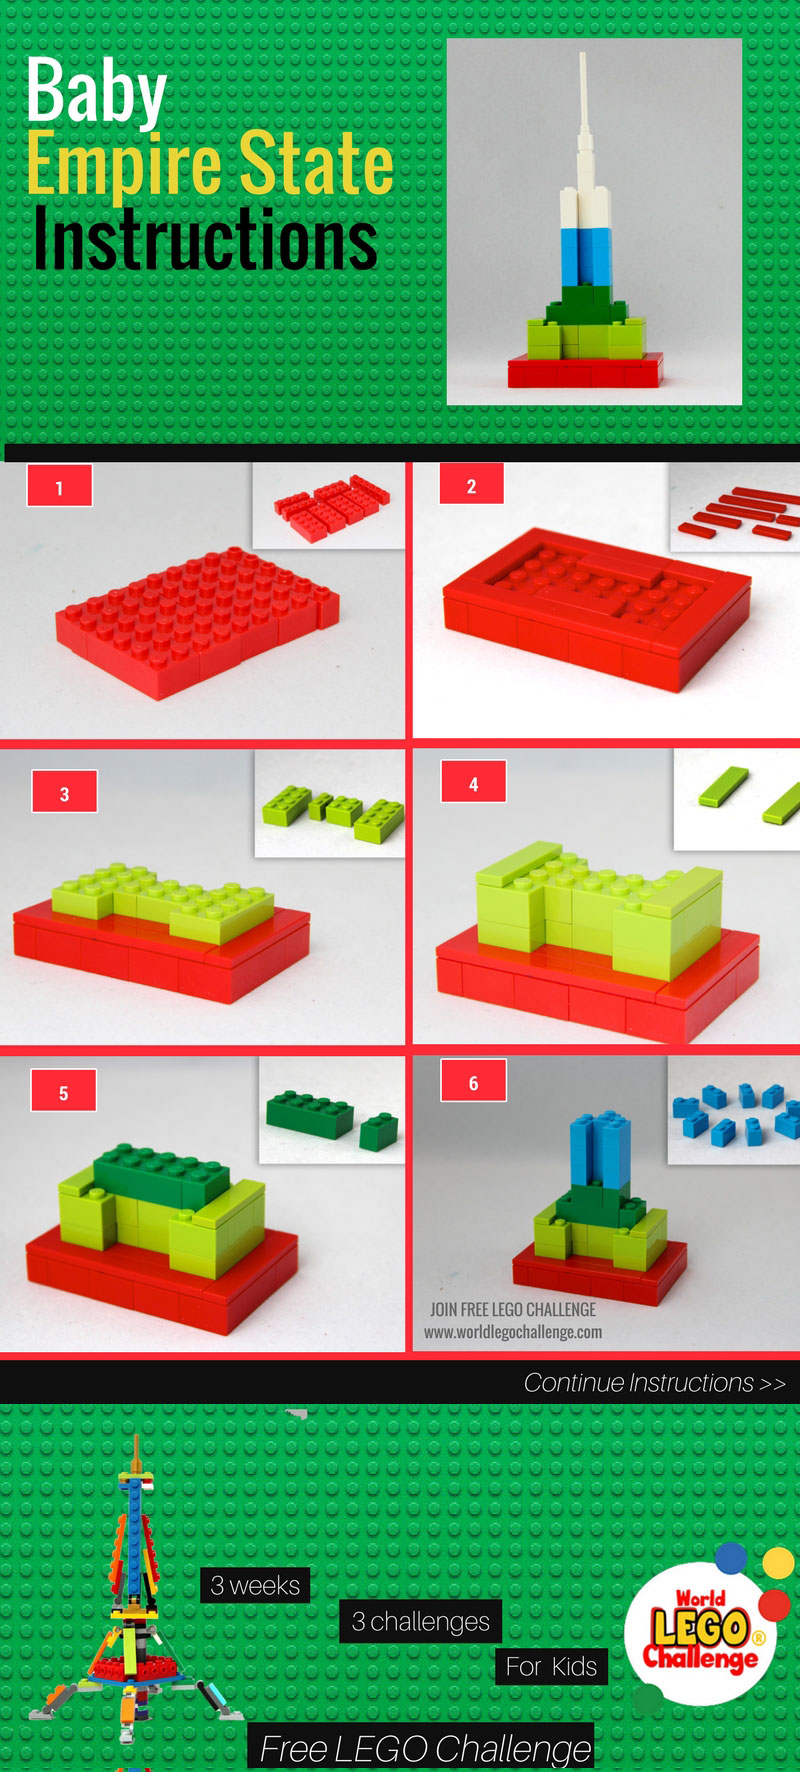 Lego Empire State Building Instructions World Lego Challenge